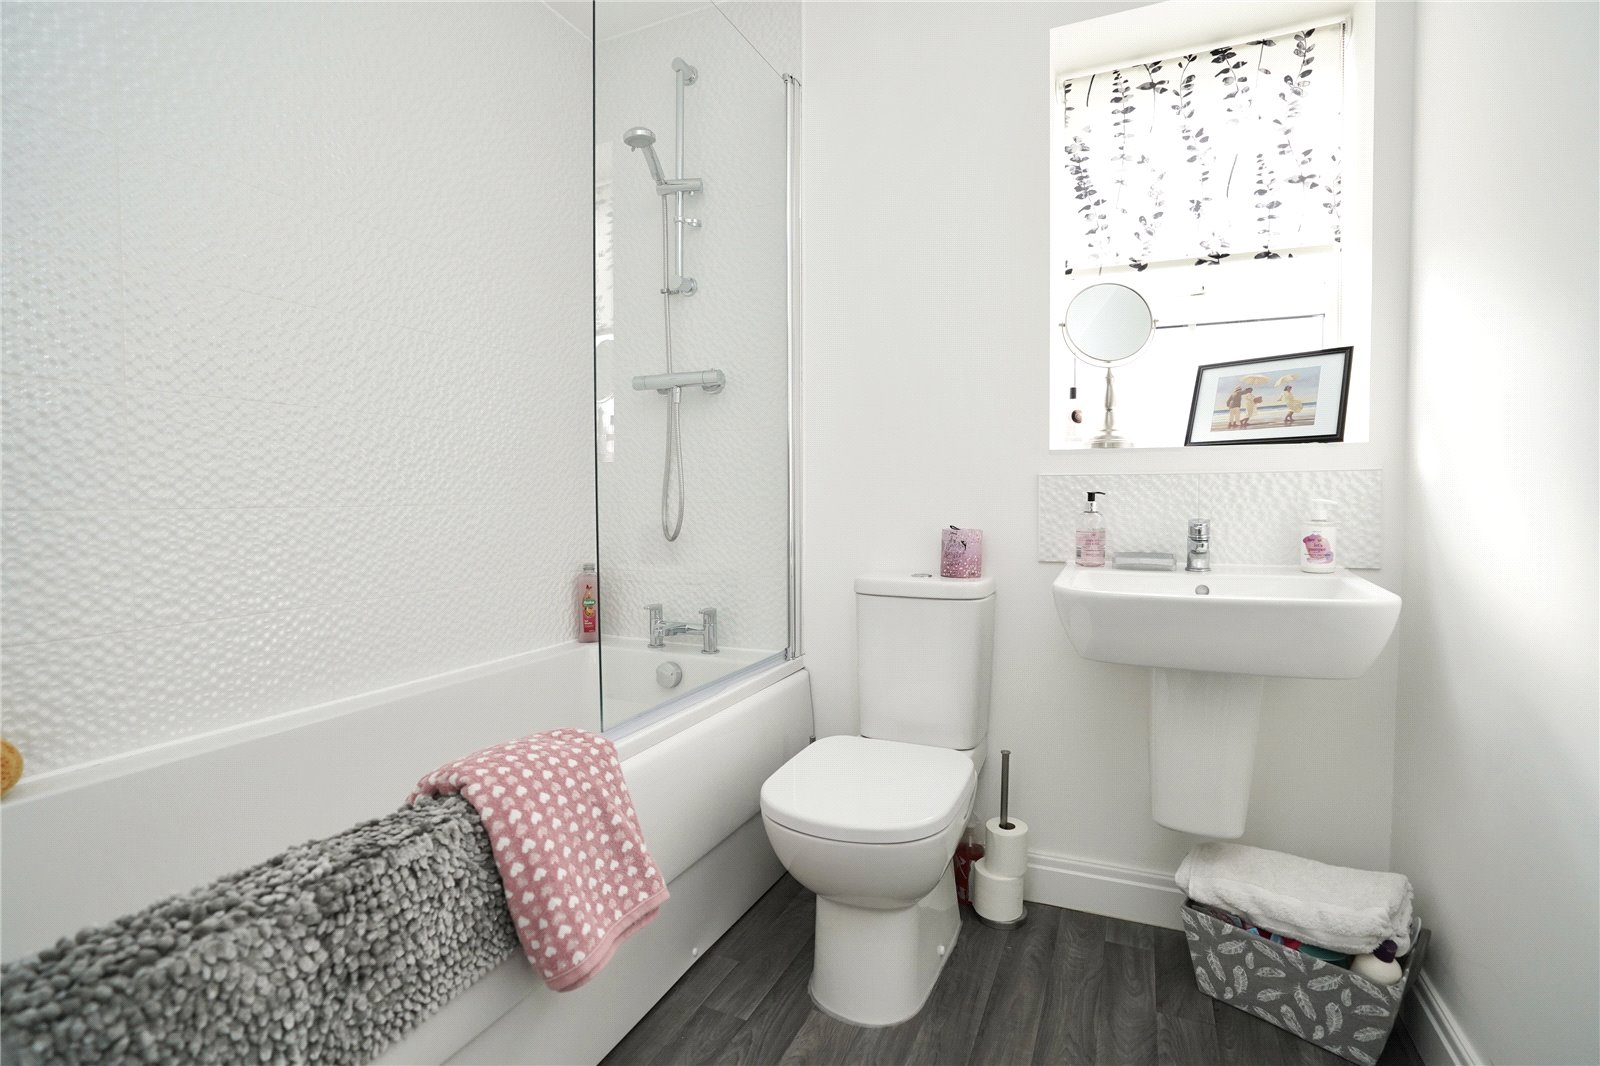 3 bed house for sale in Sawtry, PE28 5ZJ 10